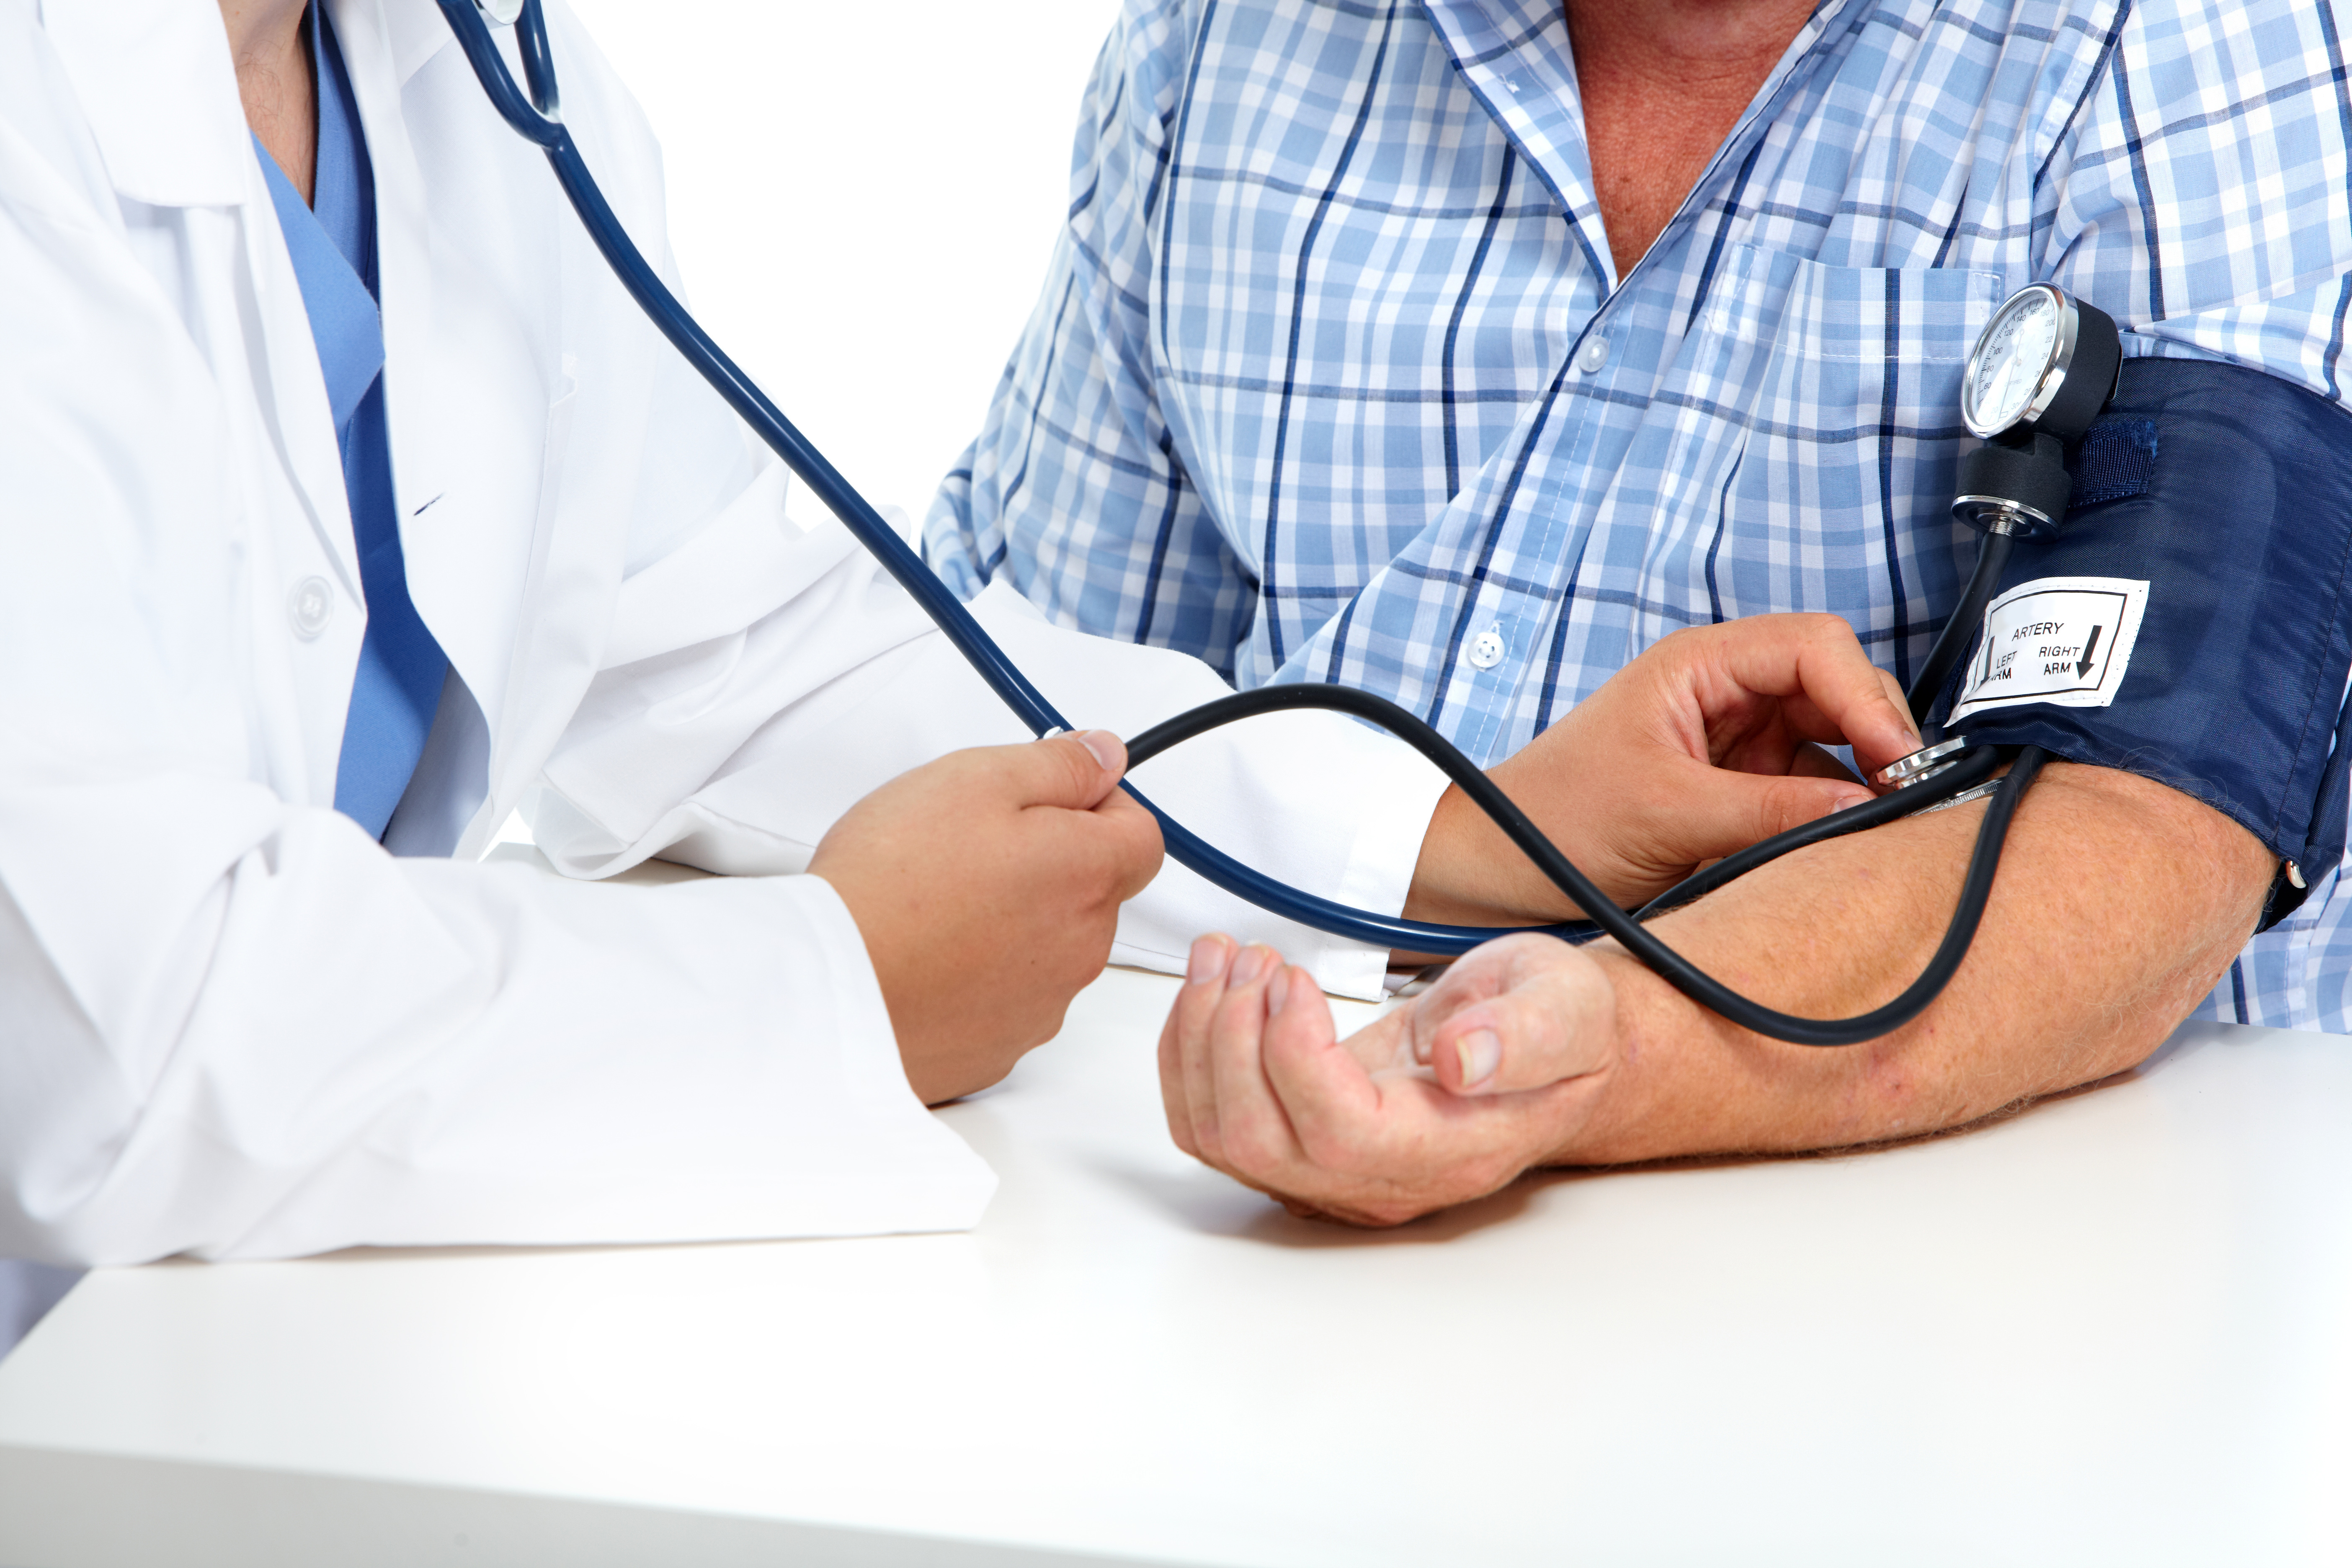 Four tips to keep your blood pressure in check